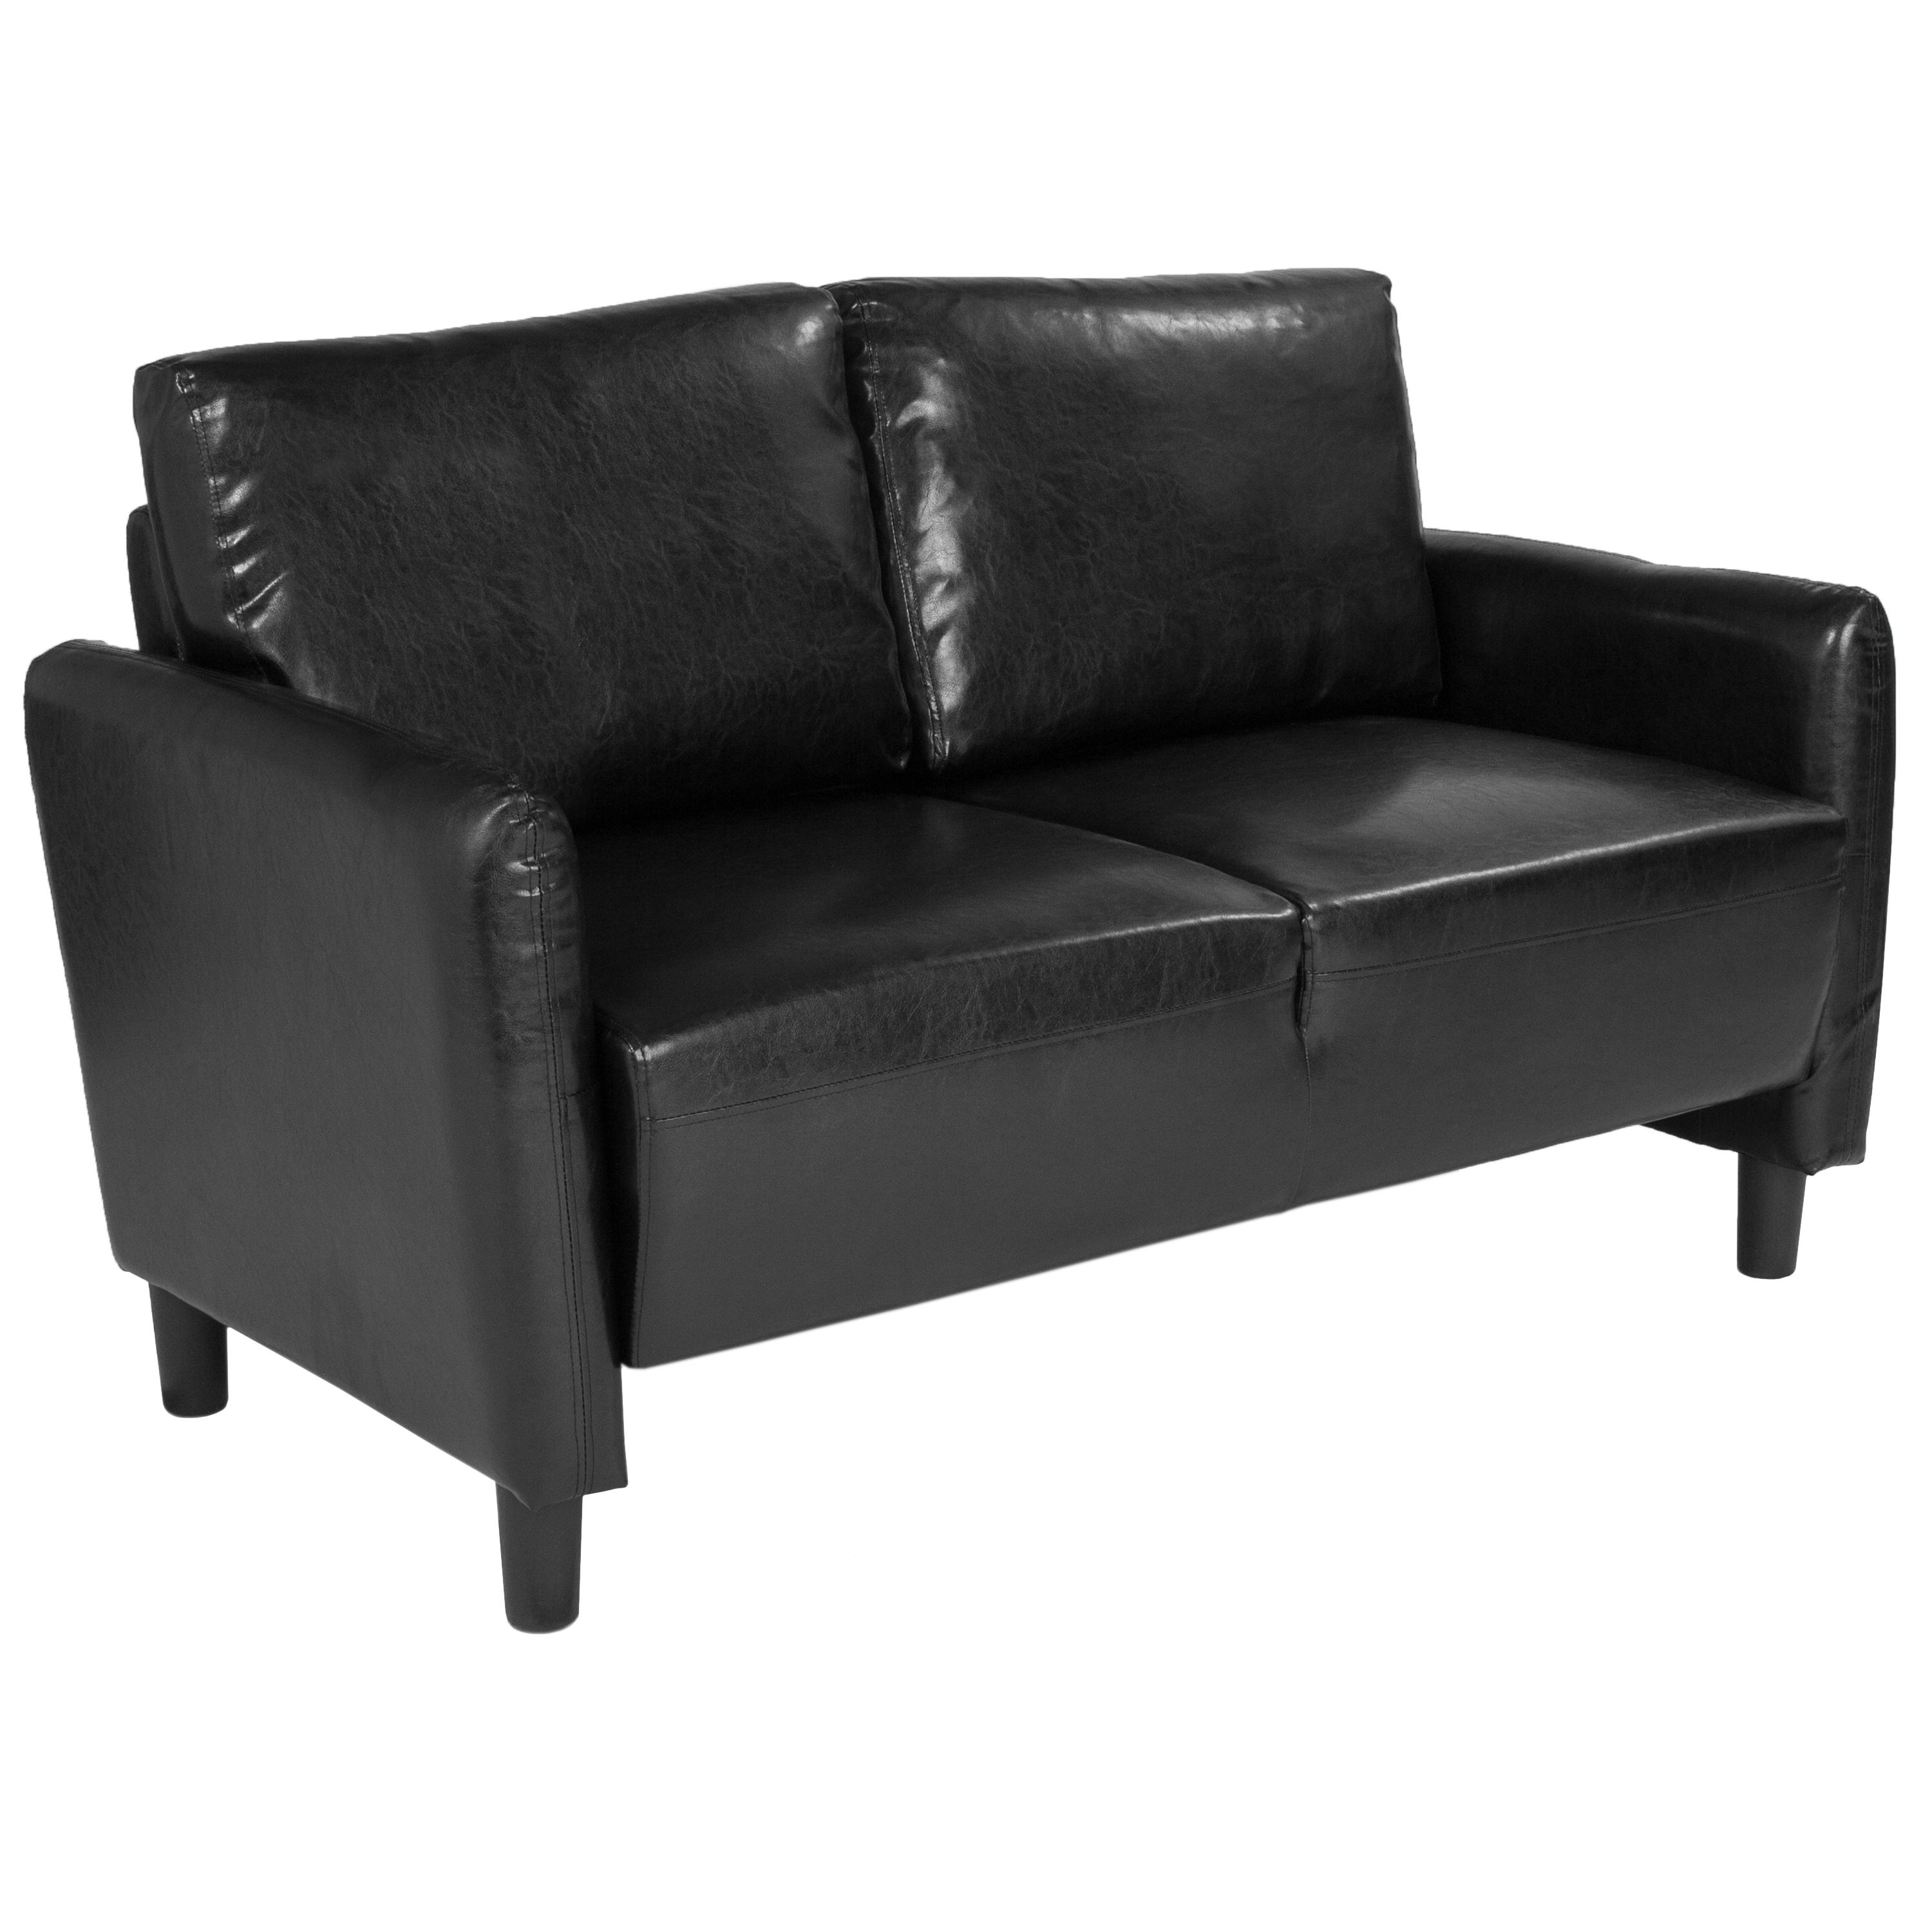 Candler Park Flash Furniture Upholstered Living Room Loveseat with Extended Side Panels and Rounded Arms in Dark Gray Fabric